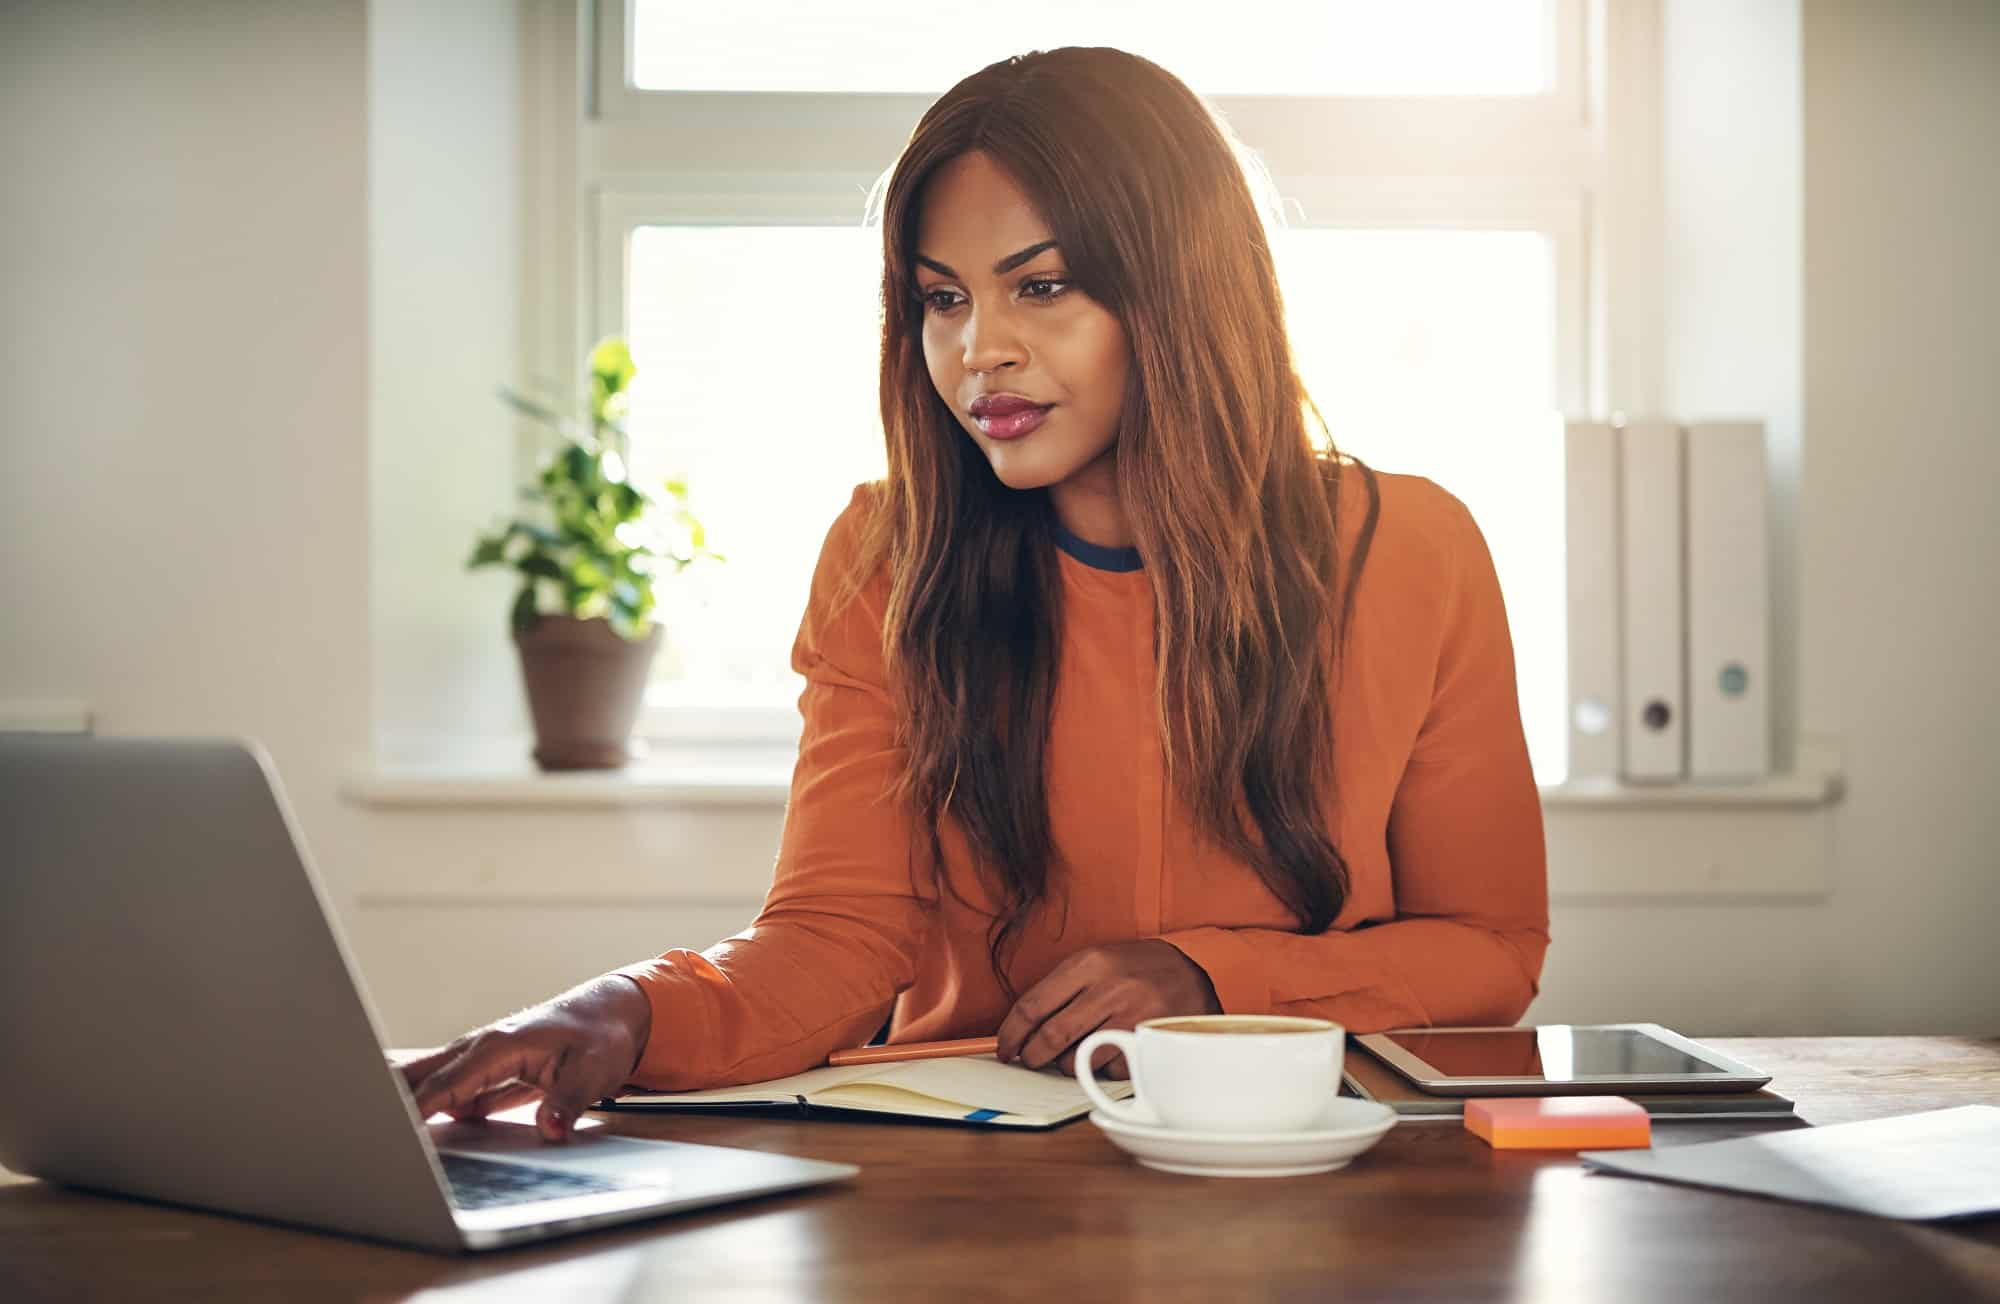 Five Disadvantages for Working at Home (And How To Overcome Them)